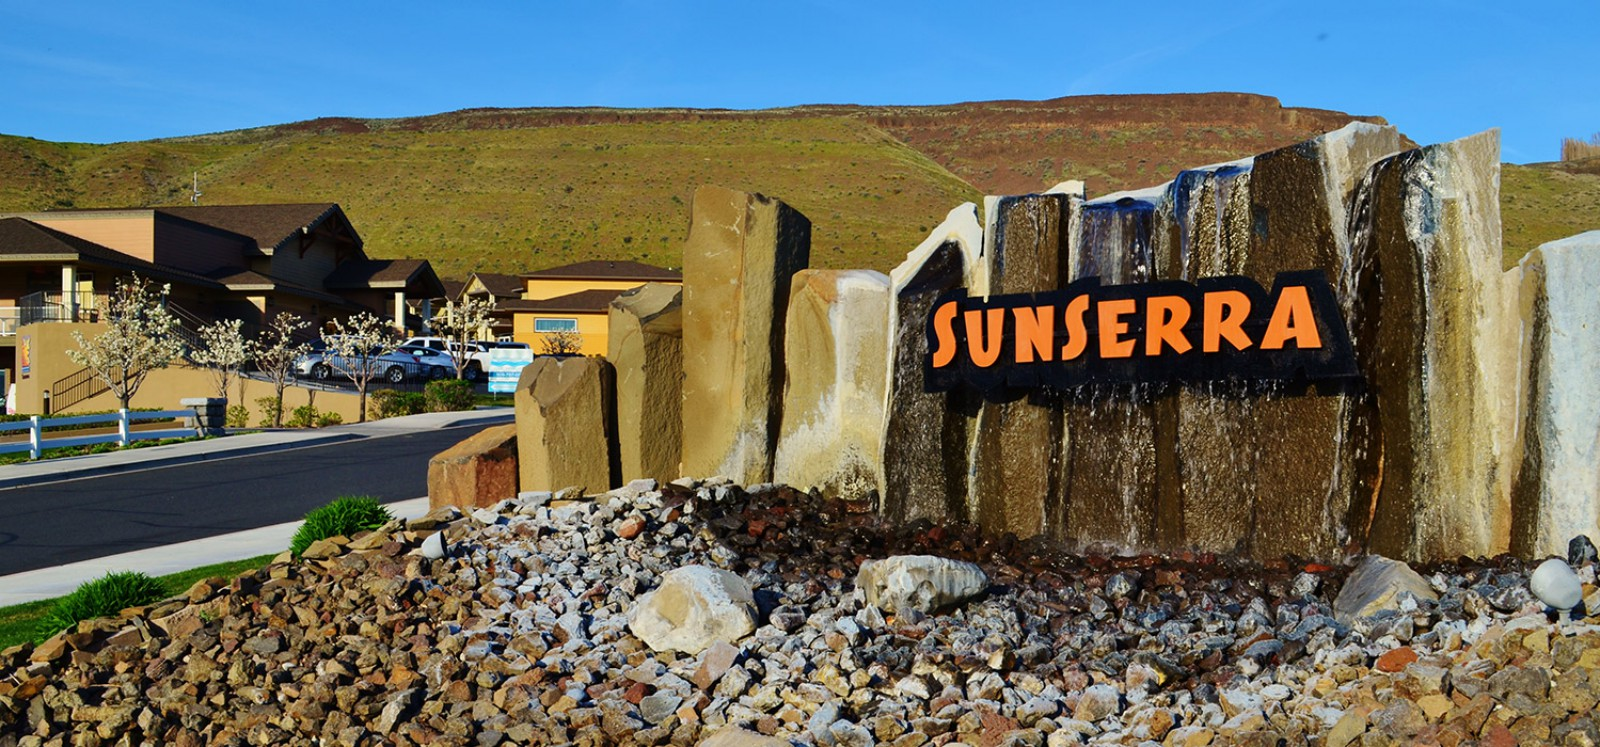 sunserra-sign